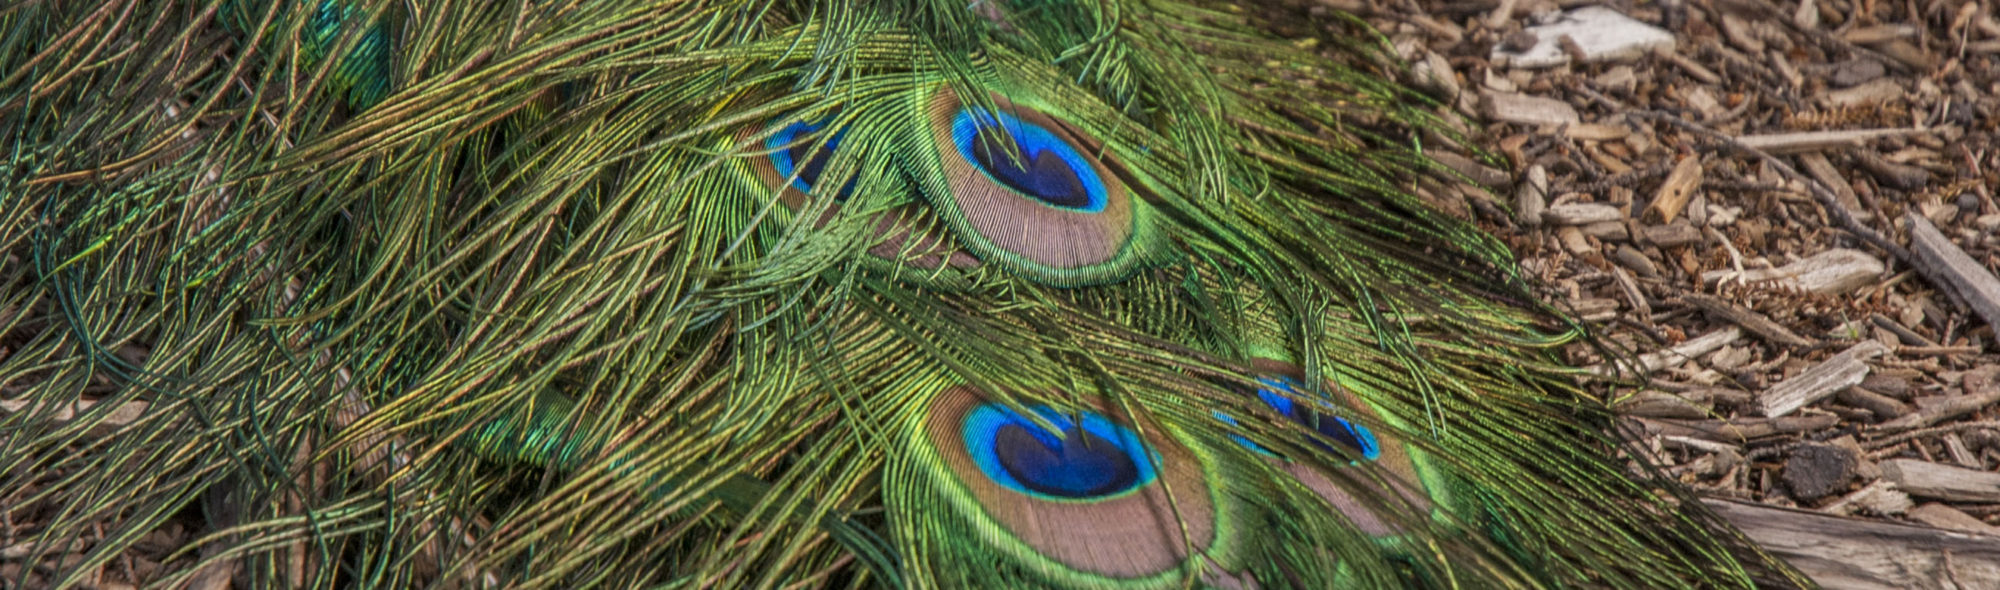 The Peacock Dreaming Blog